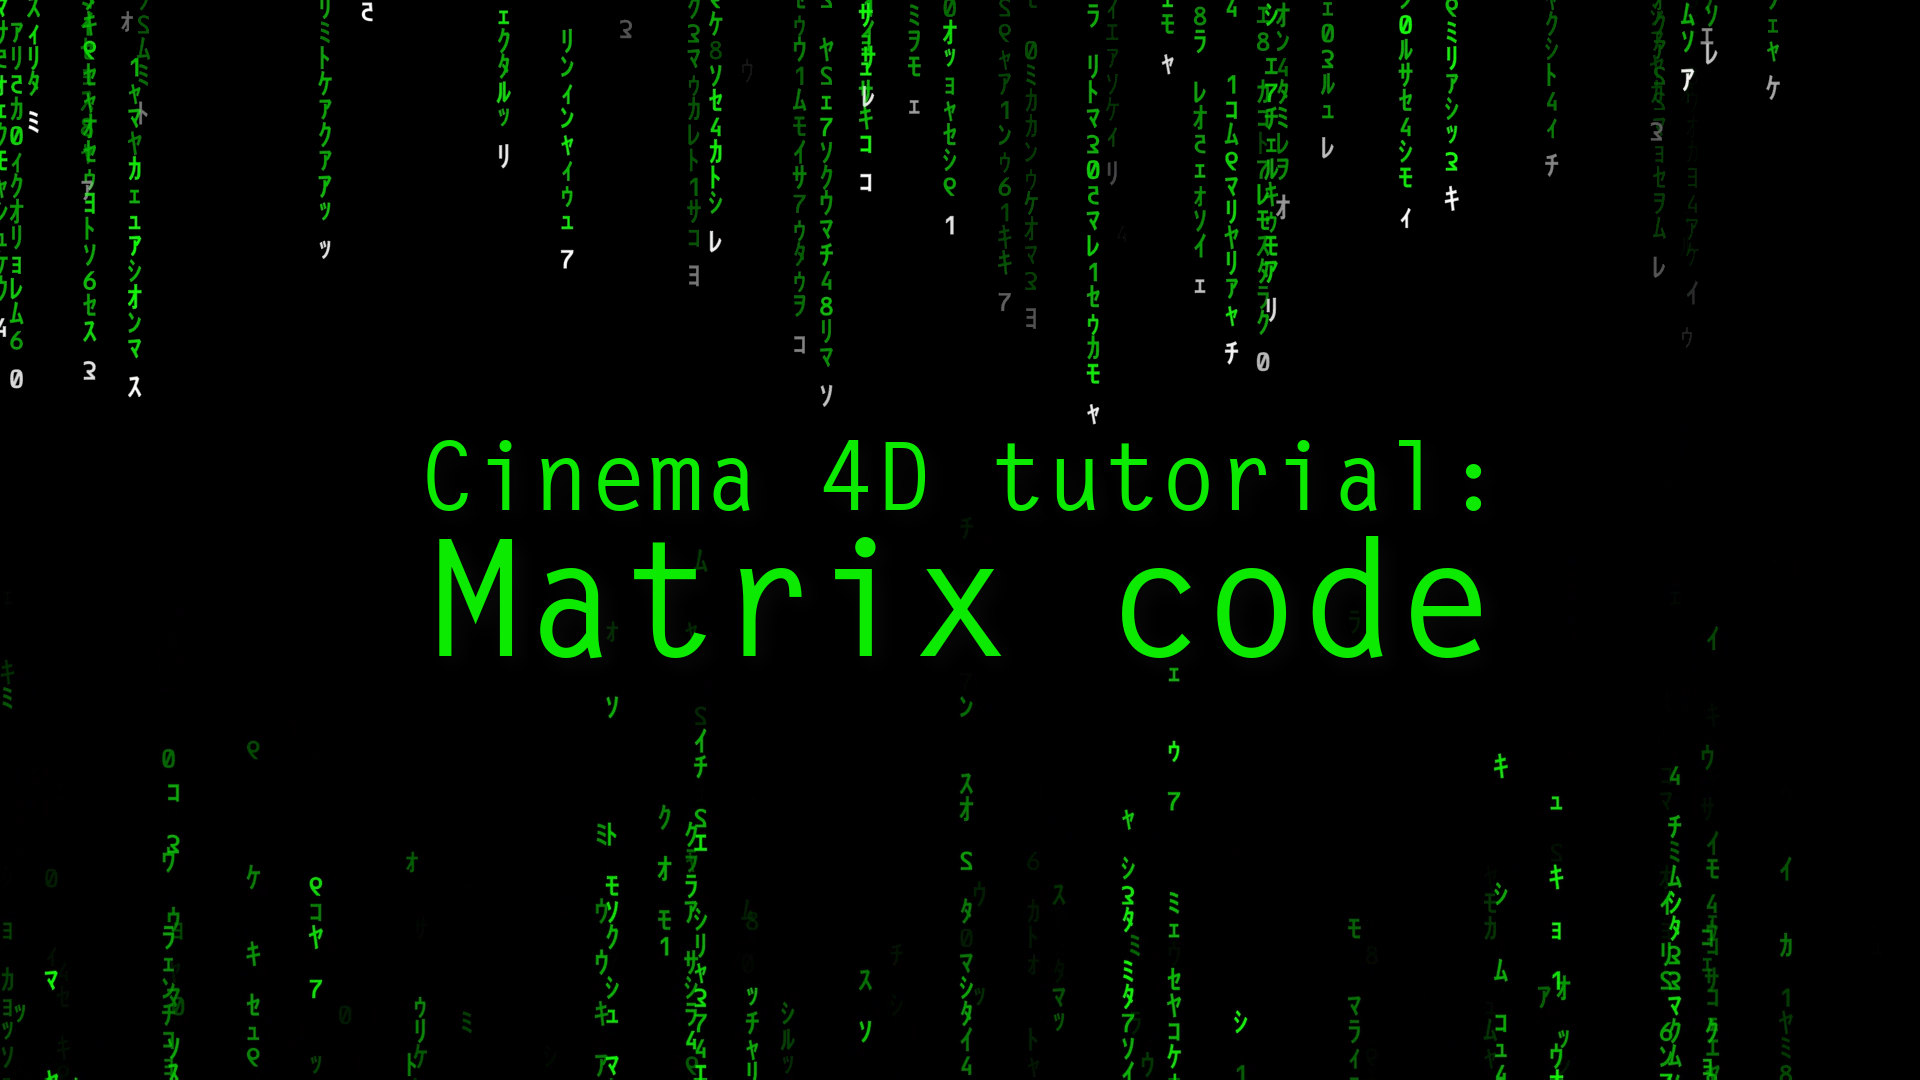 Cinema 4D tutorial: Matrix Code